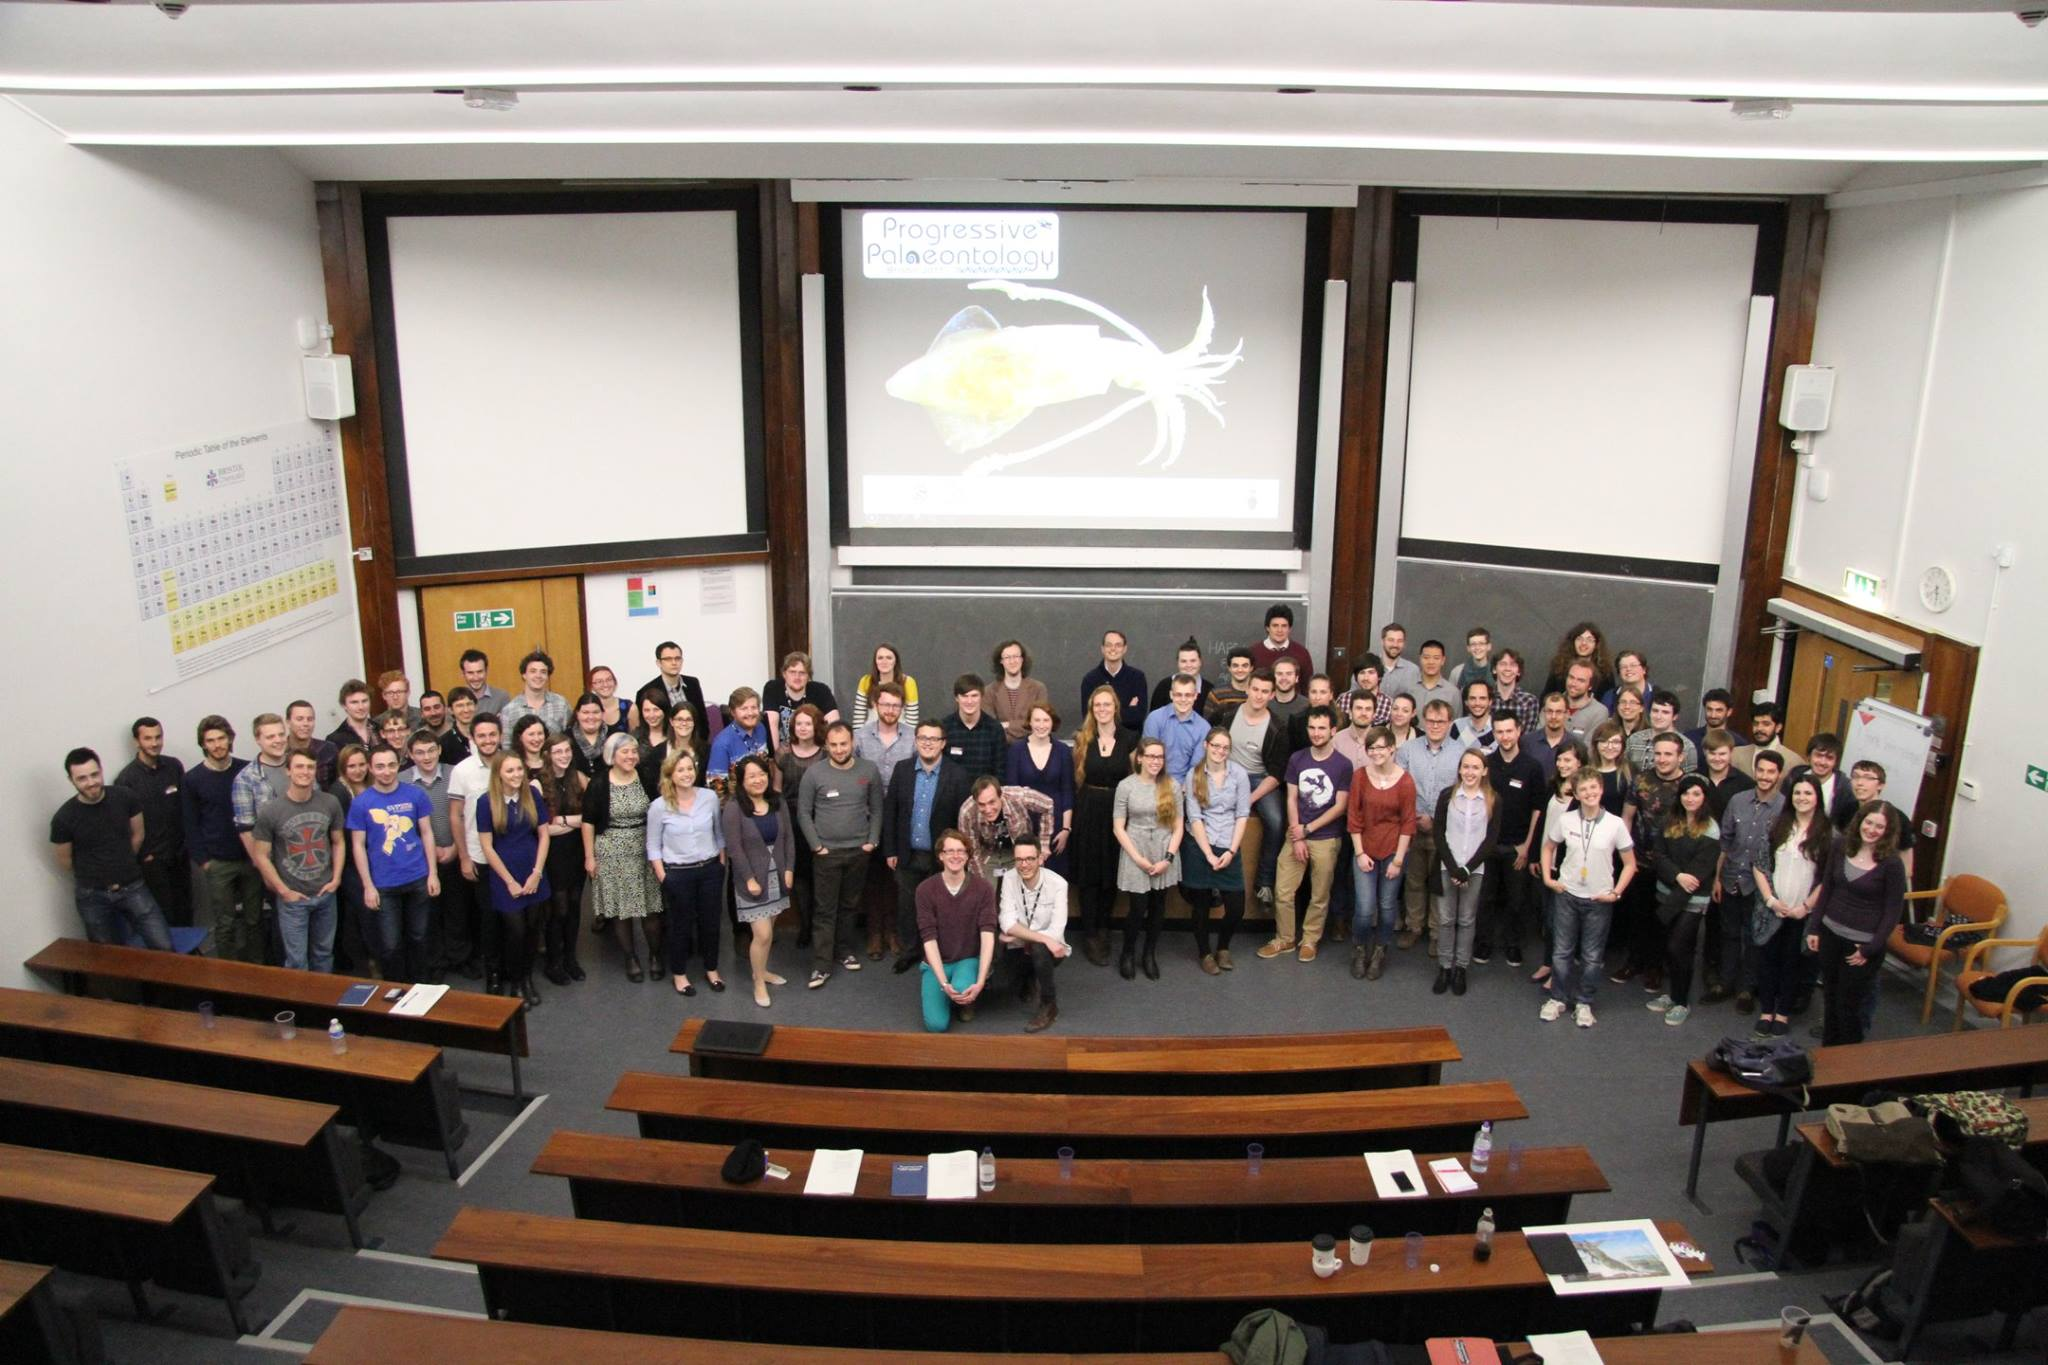 ProgPal 2015 conference photo